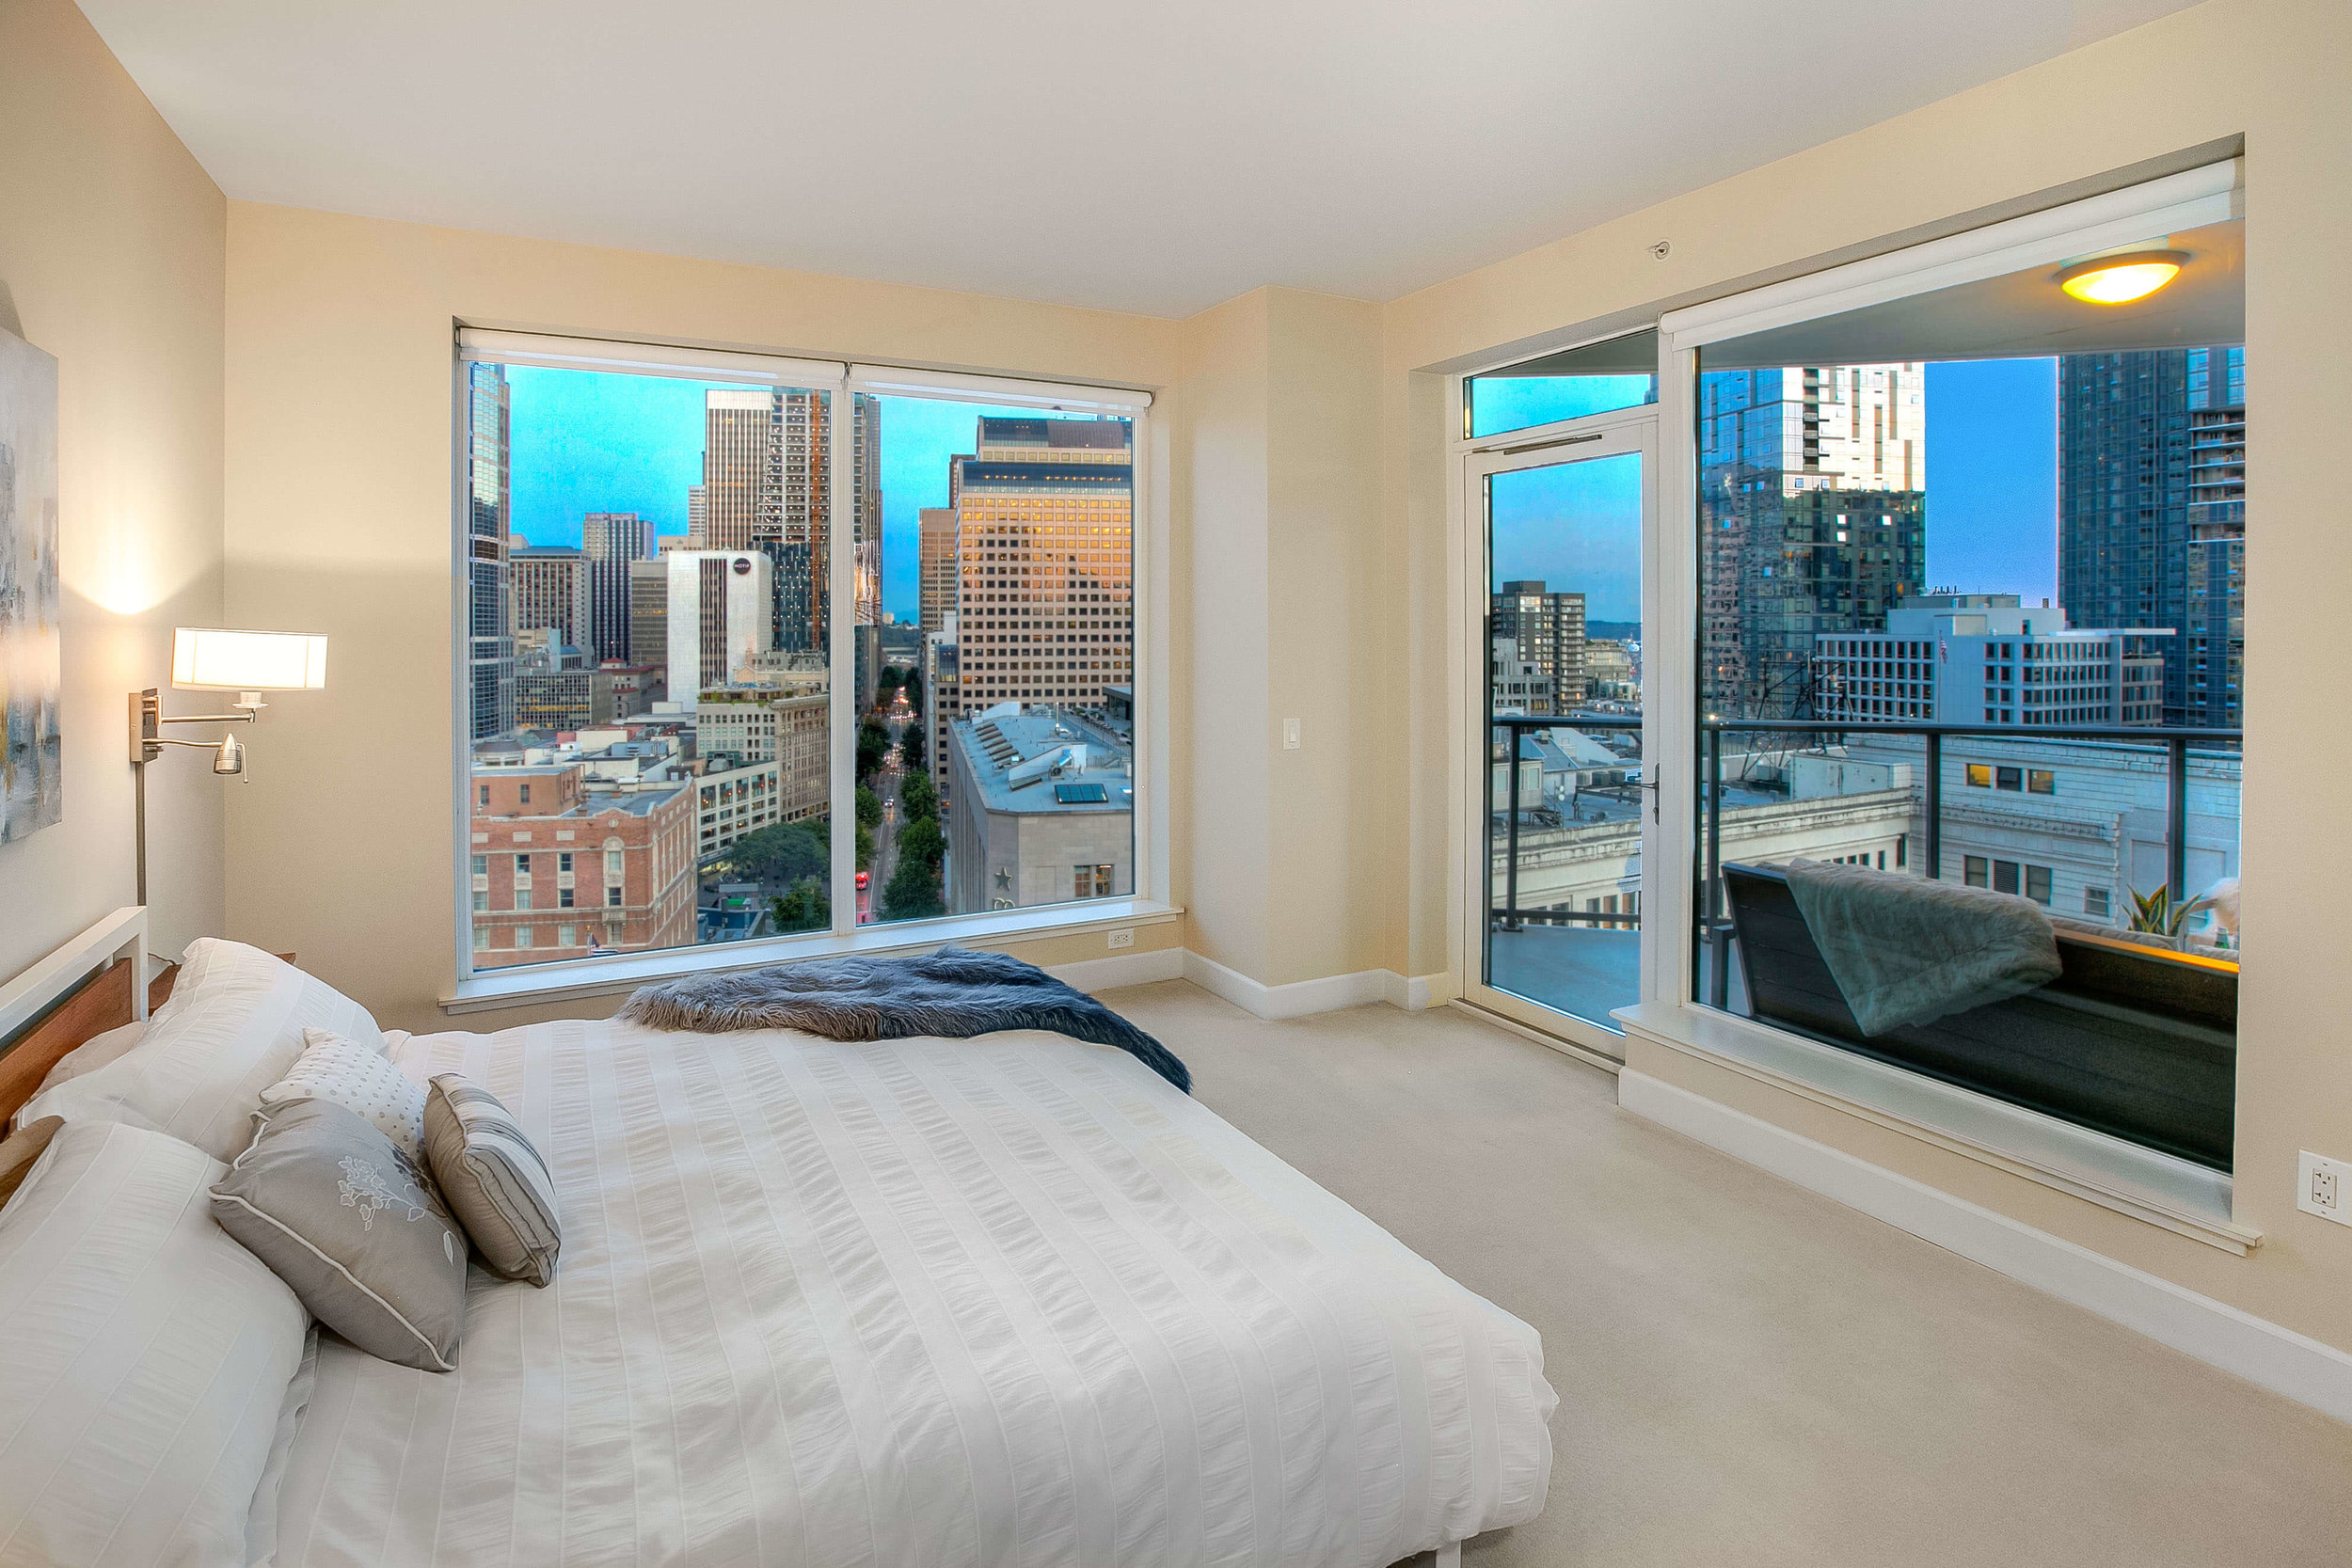 Escala-Luxury-Condo-For-Sale-Downtown-Seattle-Master-Bedroom.jpg